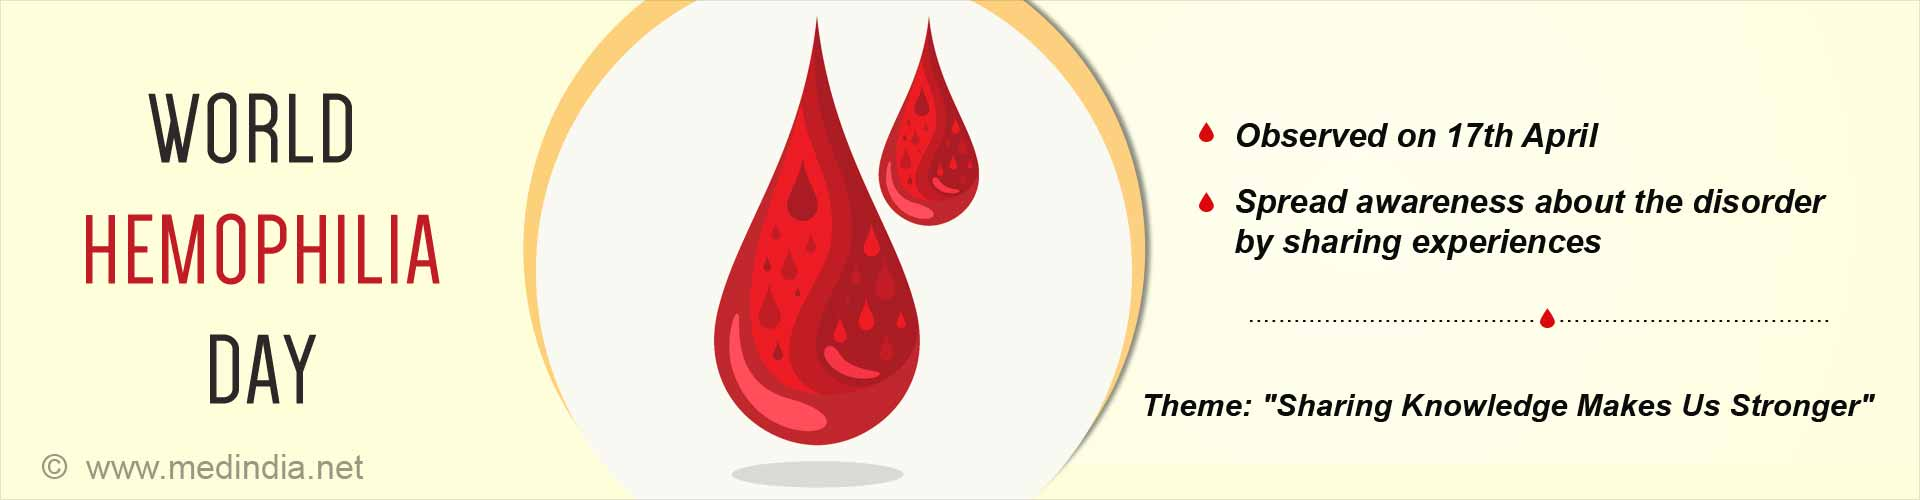 world hemophilia day observed on 17th April spread awareness by sharing experiences theme: